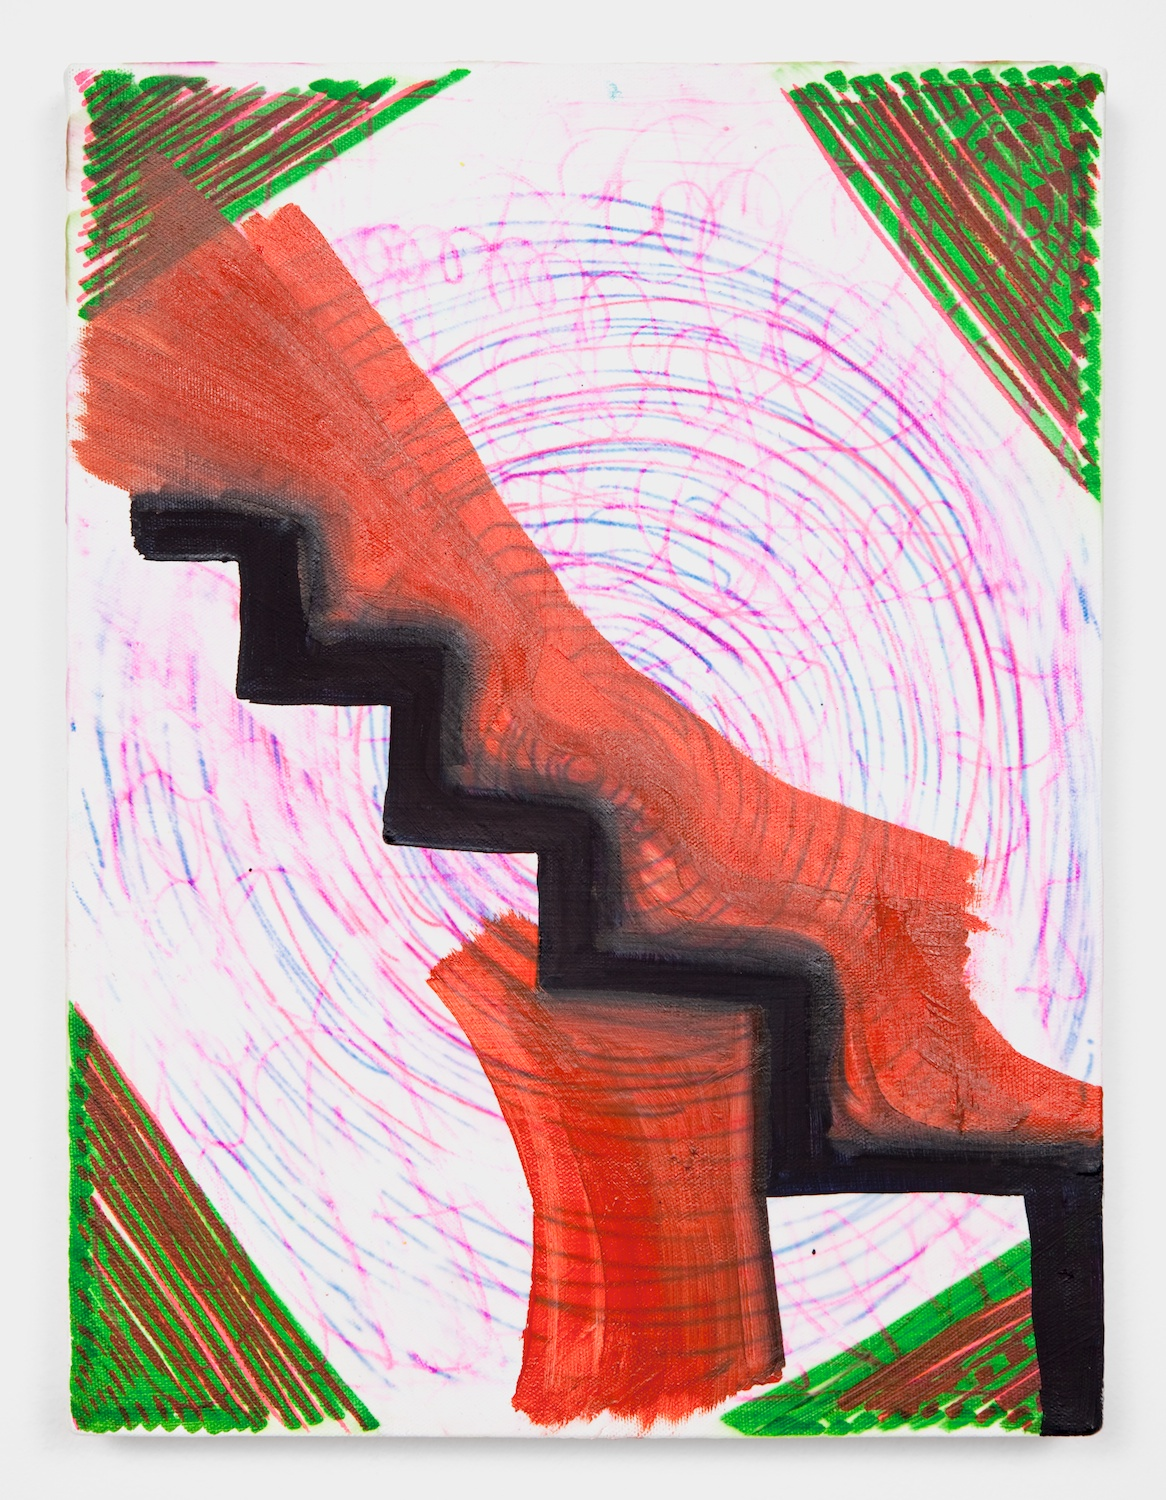 Joanne Greenbaum  Untitled  2011 Oil, acrylic and mixed media on linen 16h x 12w in JG056